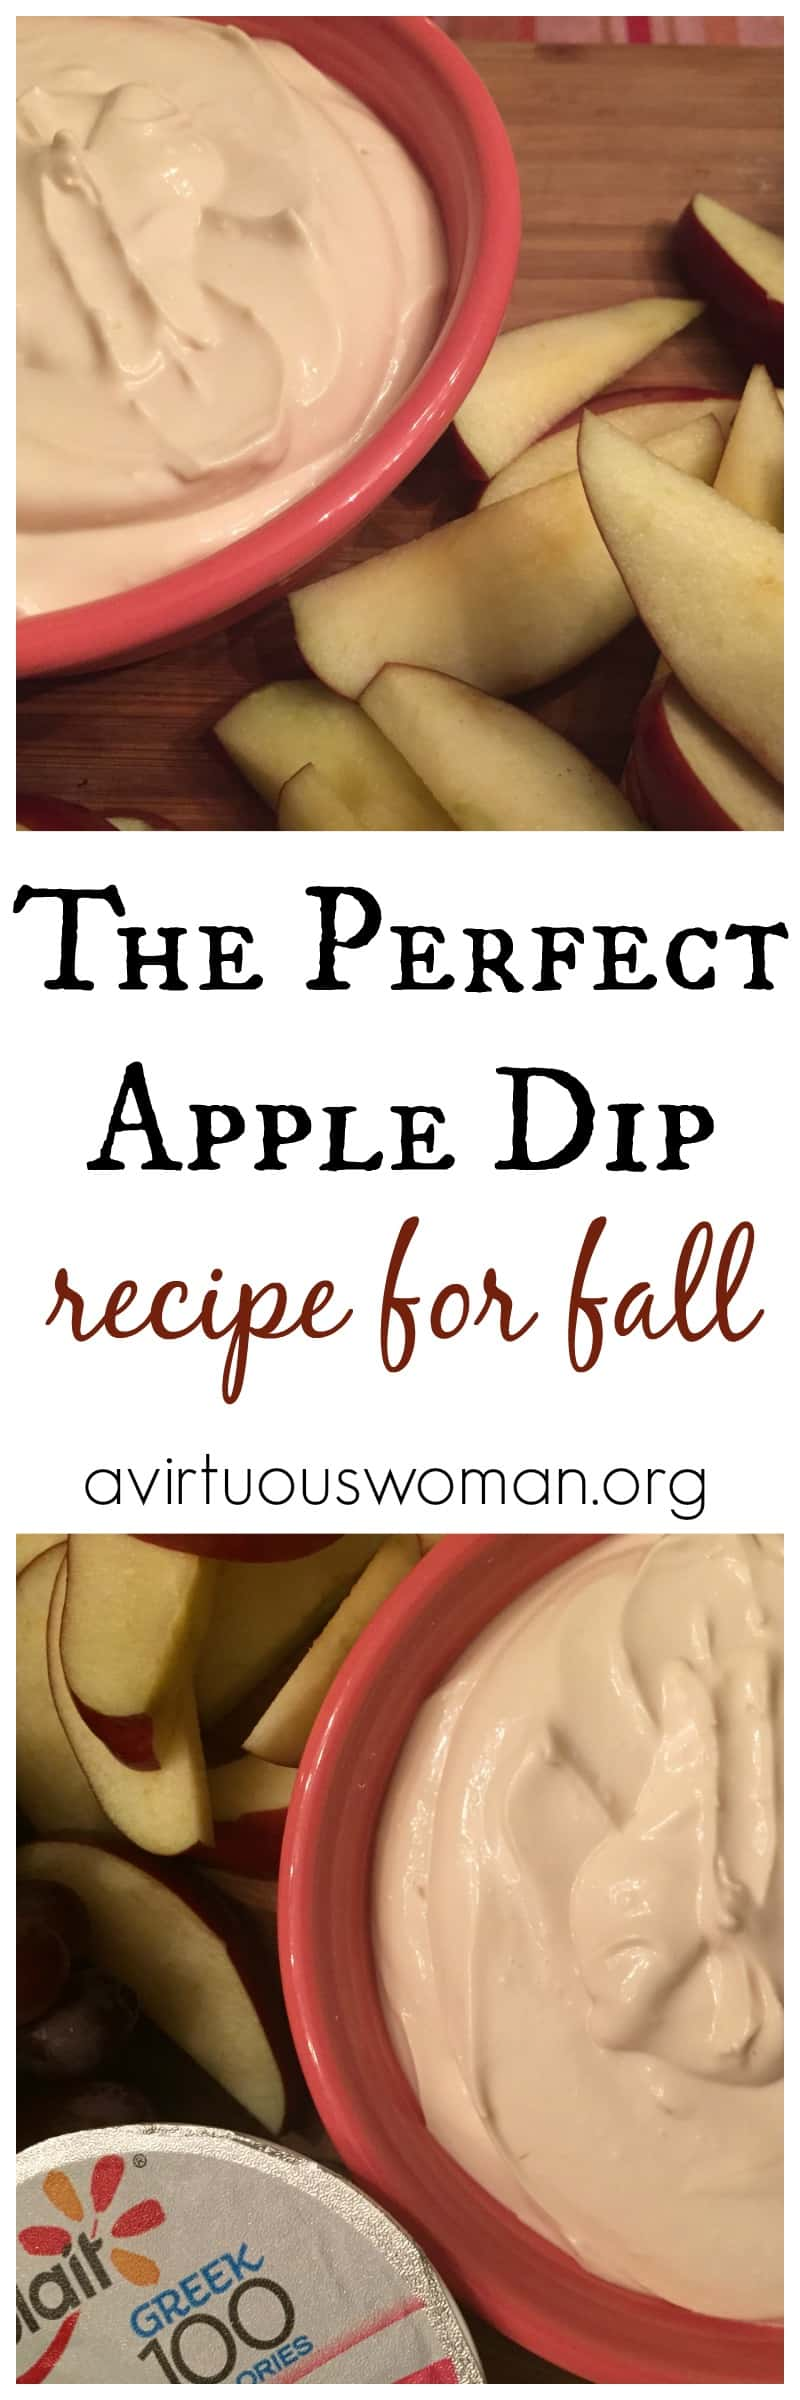 The Perfect Apple Dip @ AVirtuousWoman.org